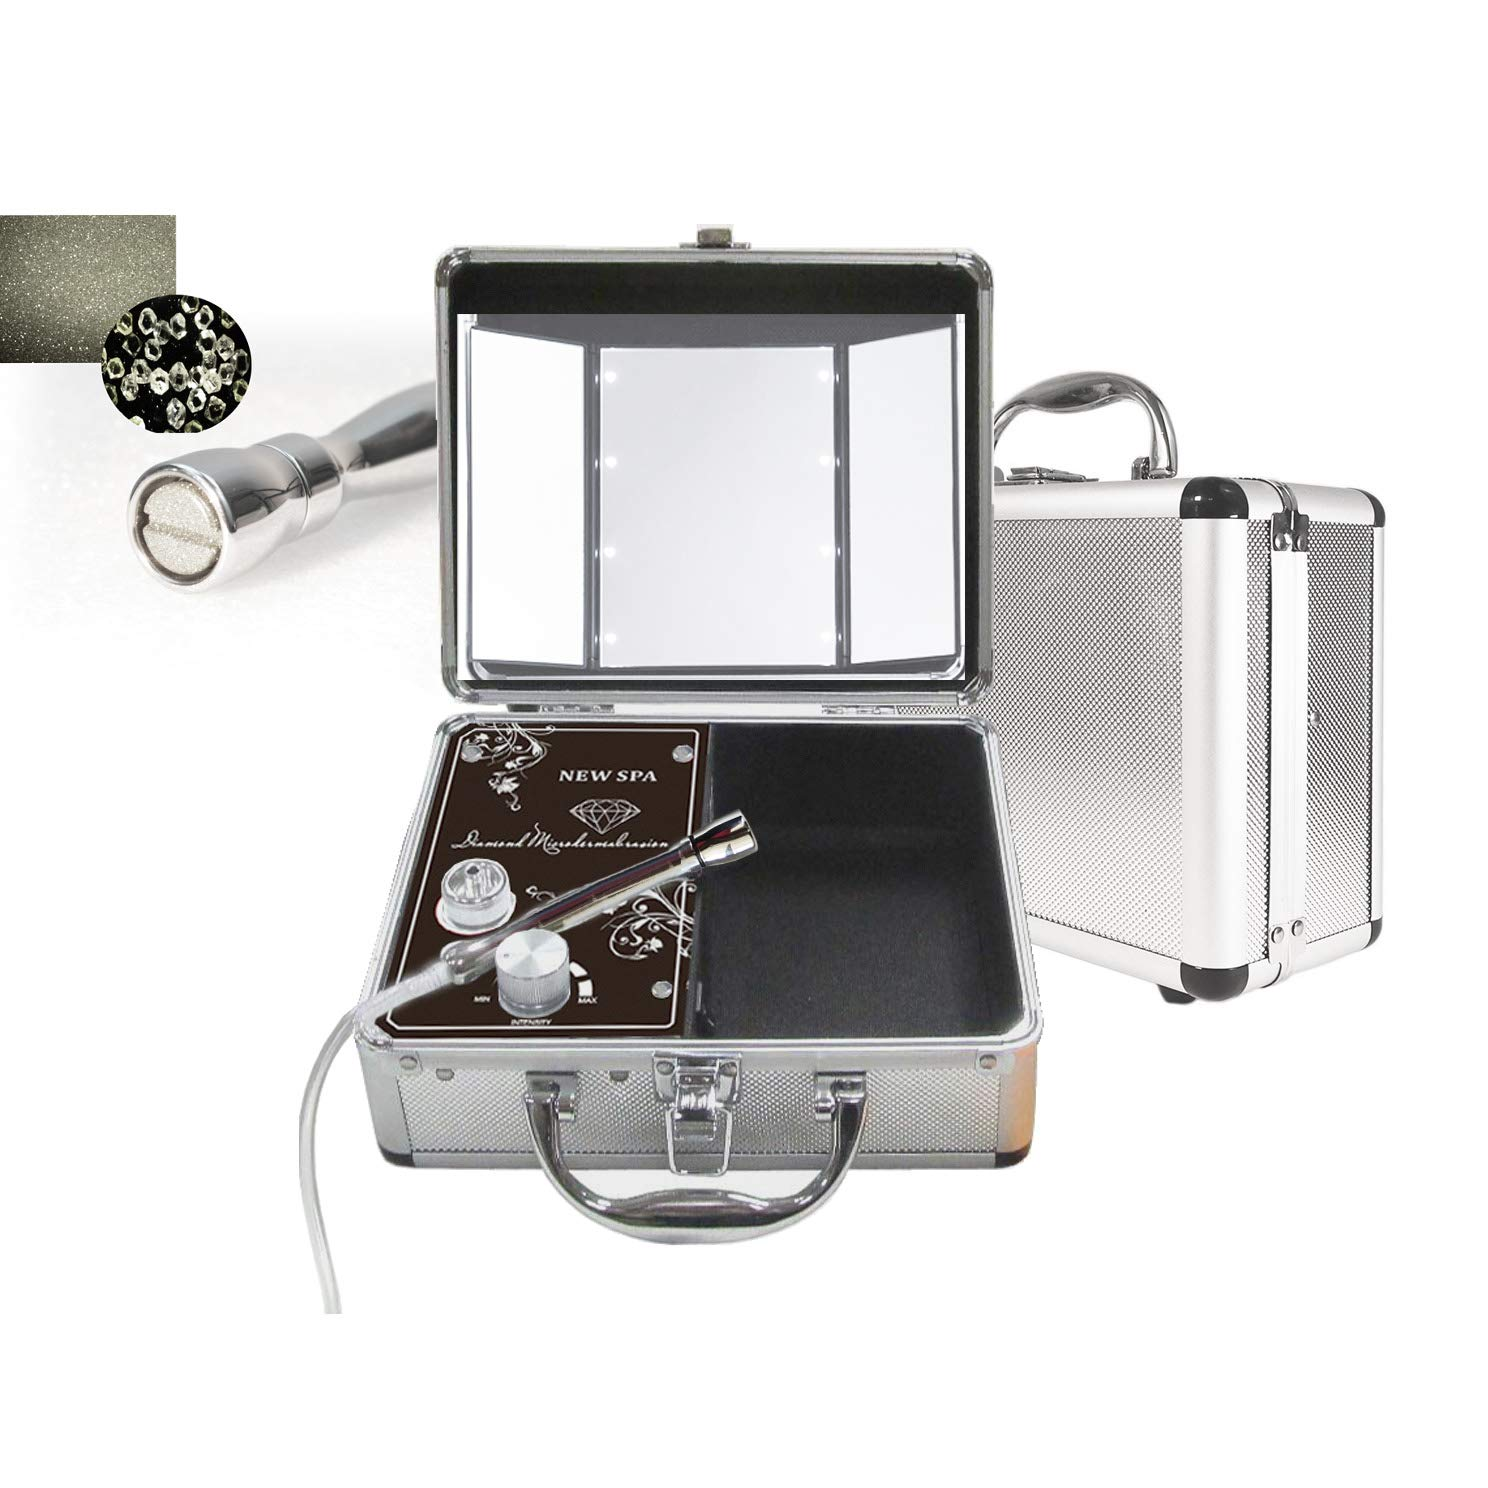 Vacuum Microdermabrasion Portable Machine NEW SPA HOME Skin Care Kit (Silver) by NEW SPA Diamond Dermabrasion Machines